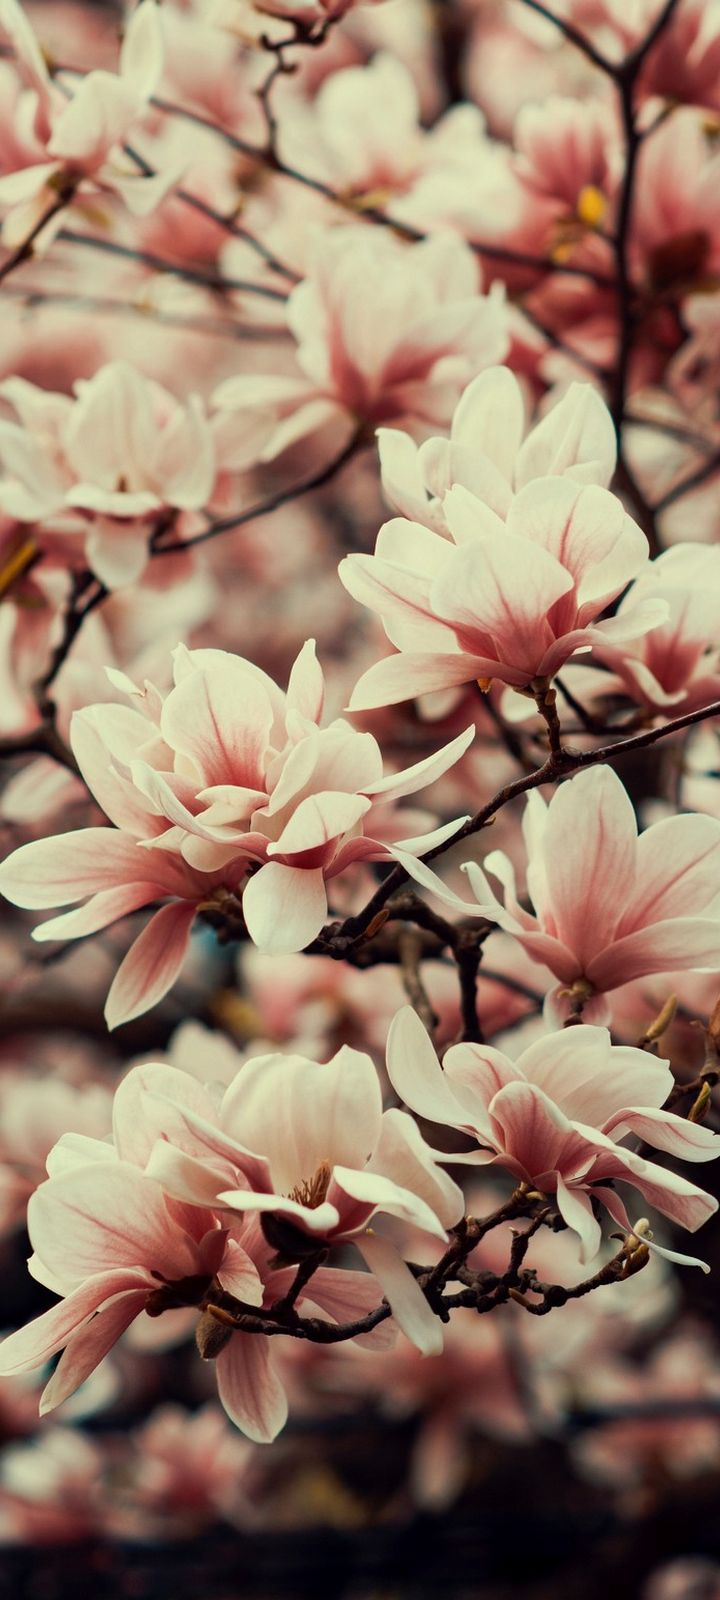 Magnolia Flowers Branches Wallpaper 720x1600